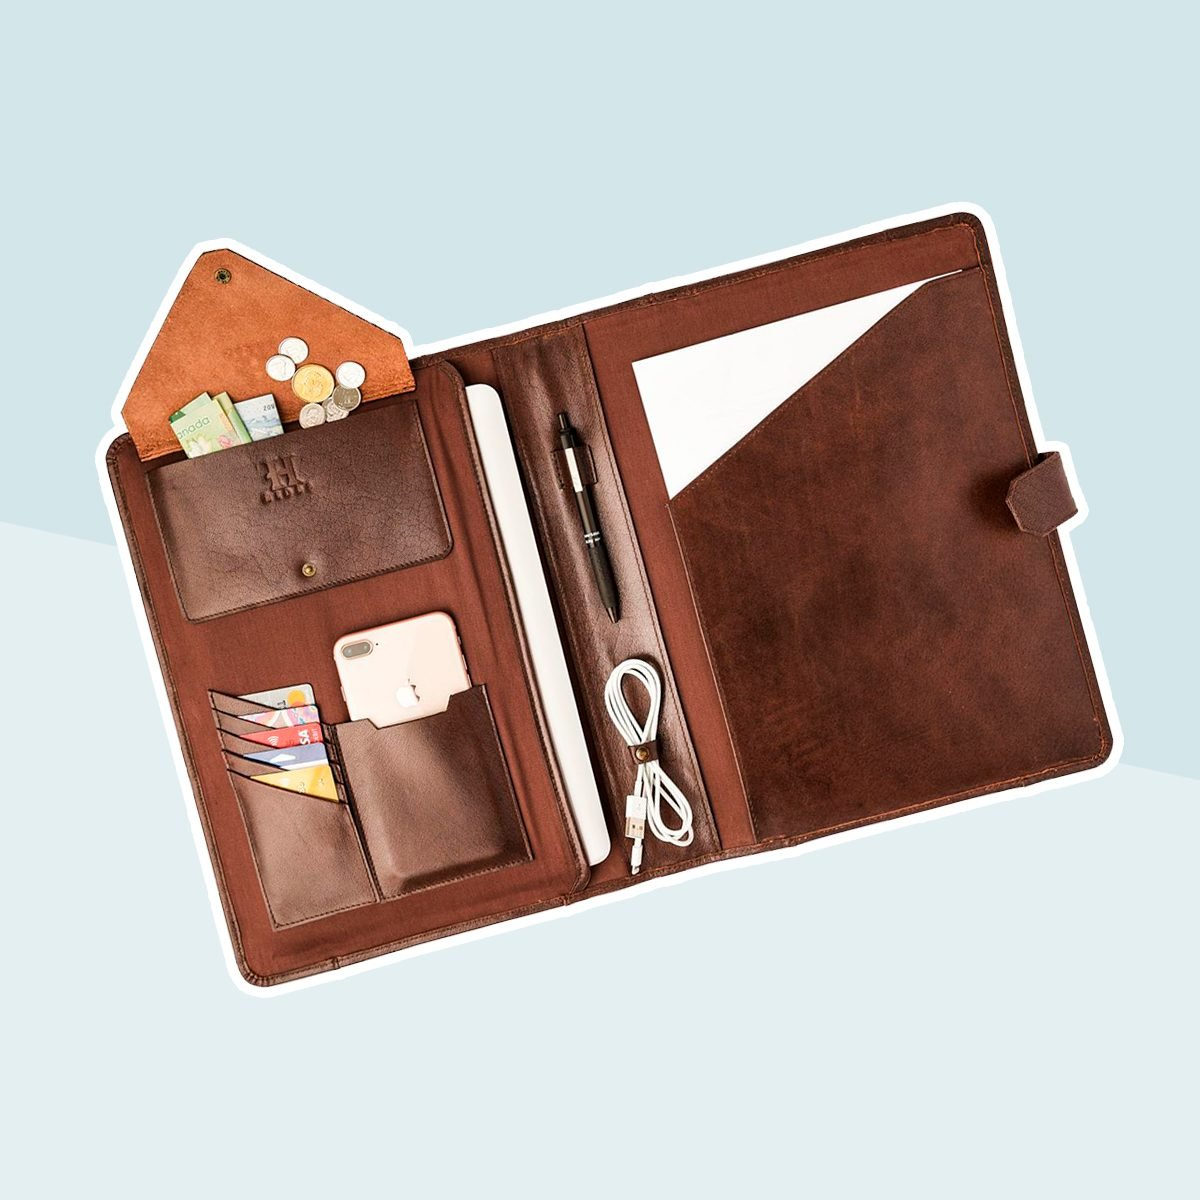 Leather Portfolio For Men, Personalized Organizer Business Laptop Holder, Leather Anniversary Gifts for Him, A4 Size Document Holder